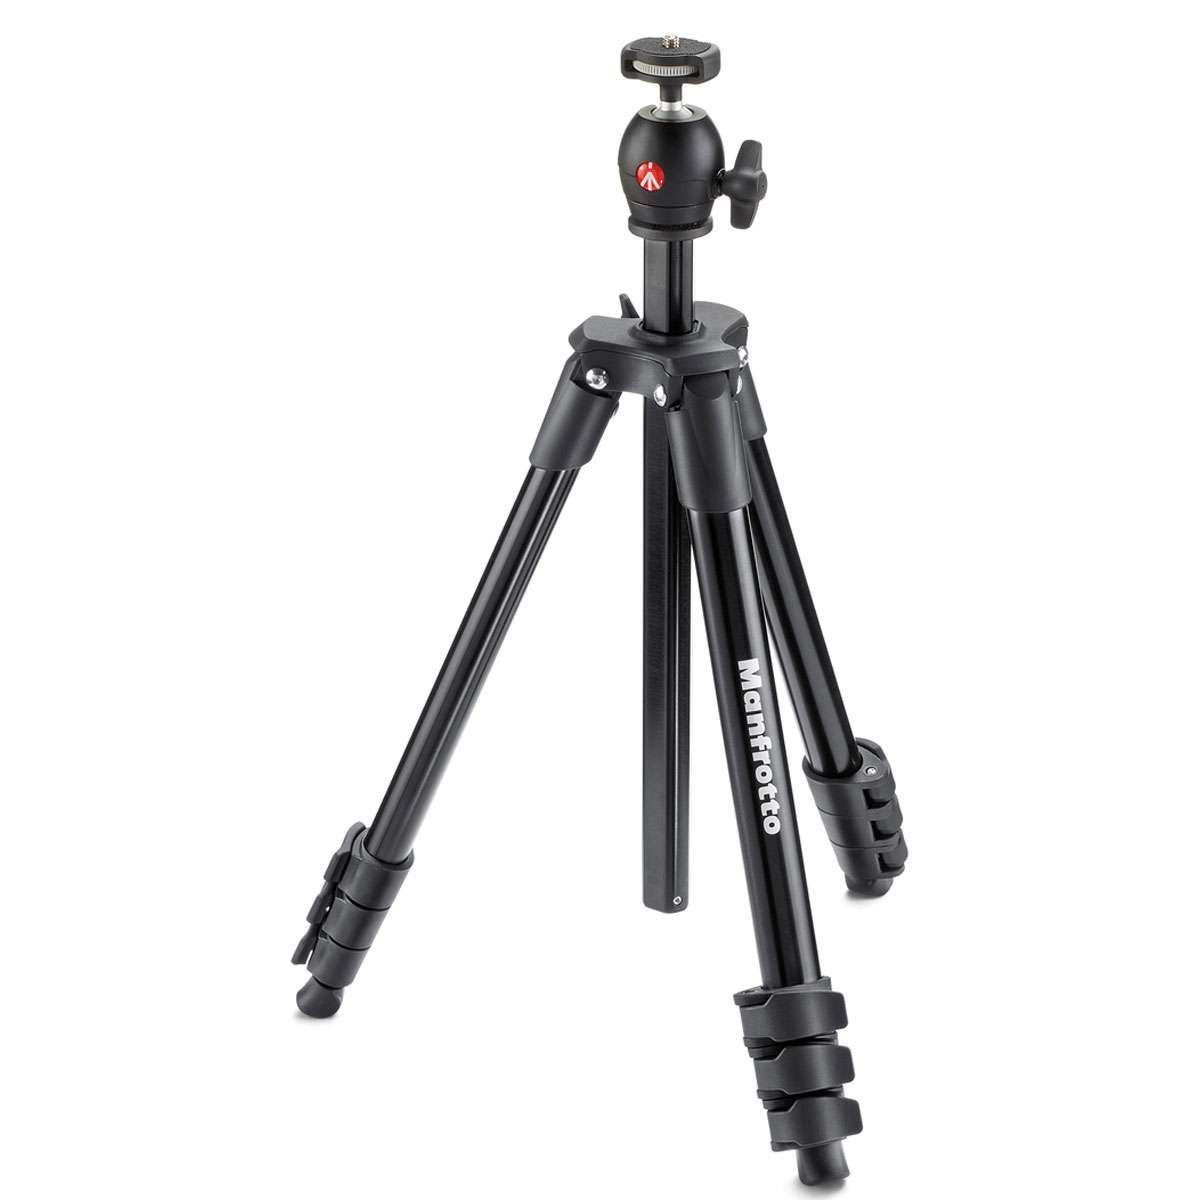 manfrotto compact light mkcompactlt noir tr pied appareil photo manfrotto sur. Black Bedroom Furniture Sets. Home Design Ideas